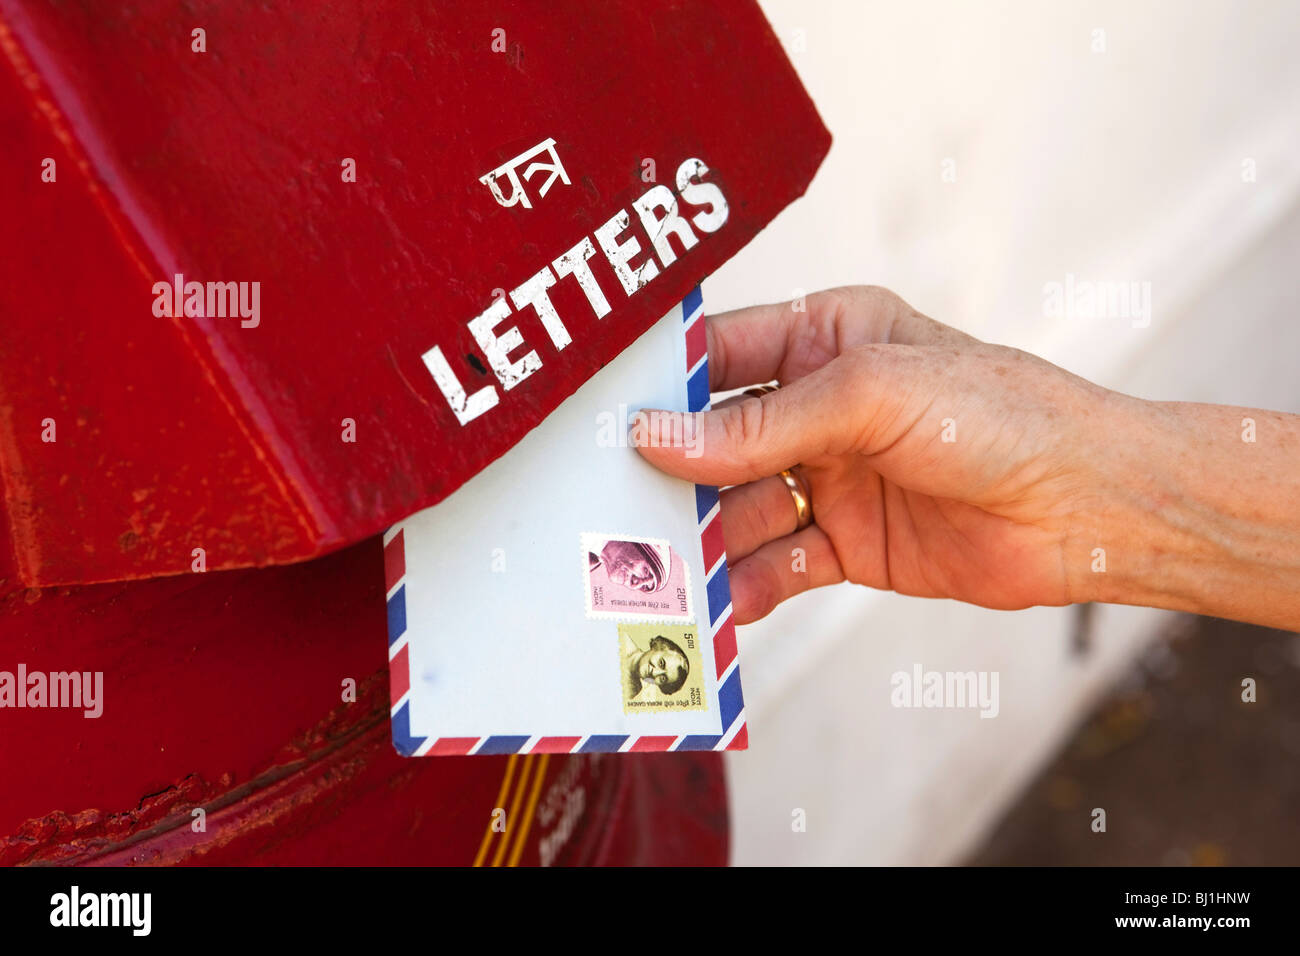 India, Kerala, Kochi, Fort Cochin, woman's hand posting air mail letter in post box - Stock Image